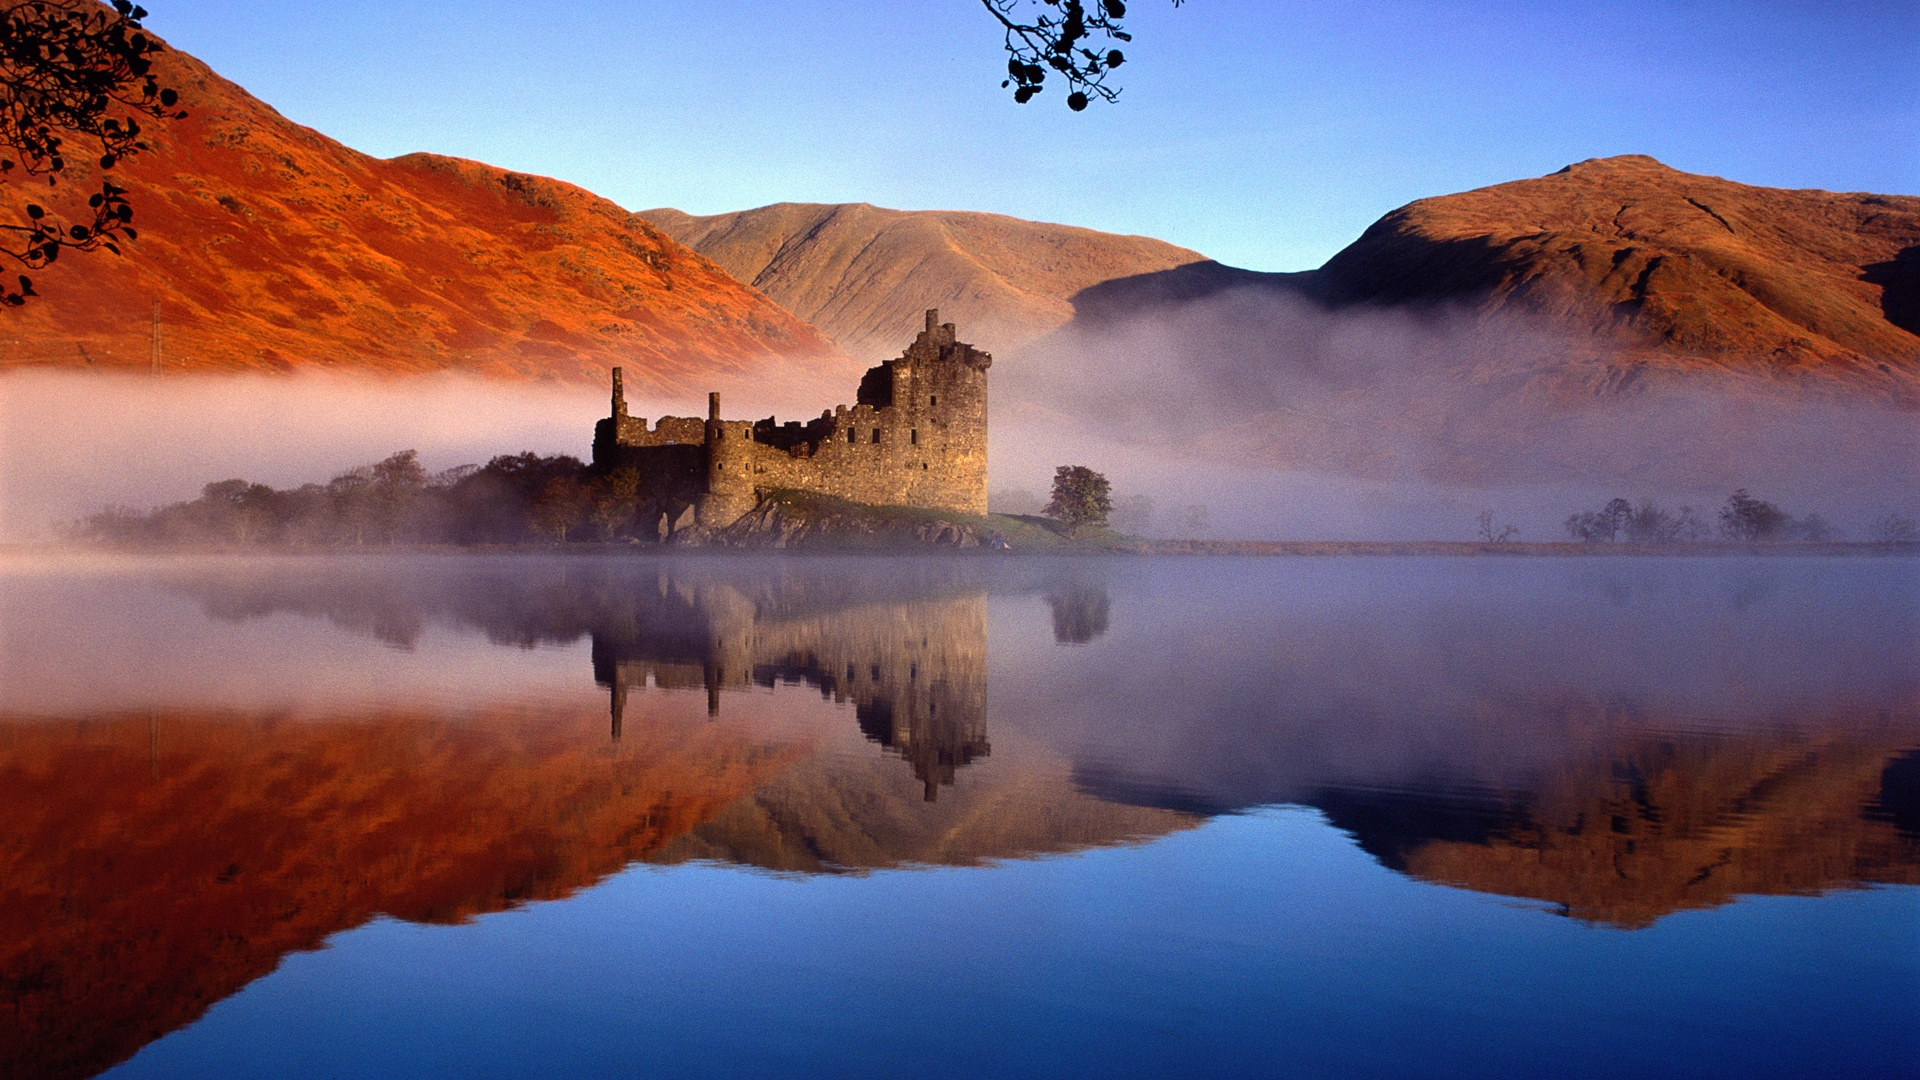 Wallpaper Castle In Scotland 1920x1200 Hd Picture Image